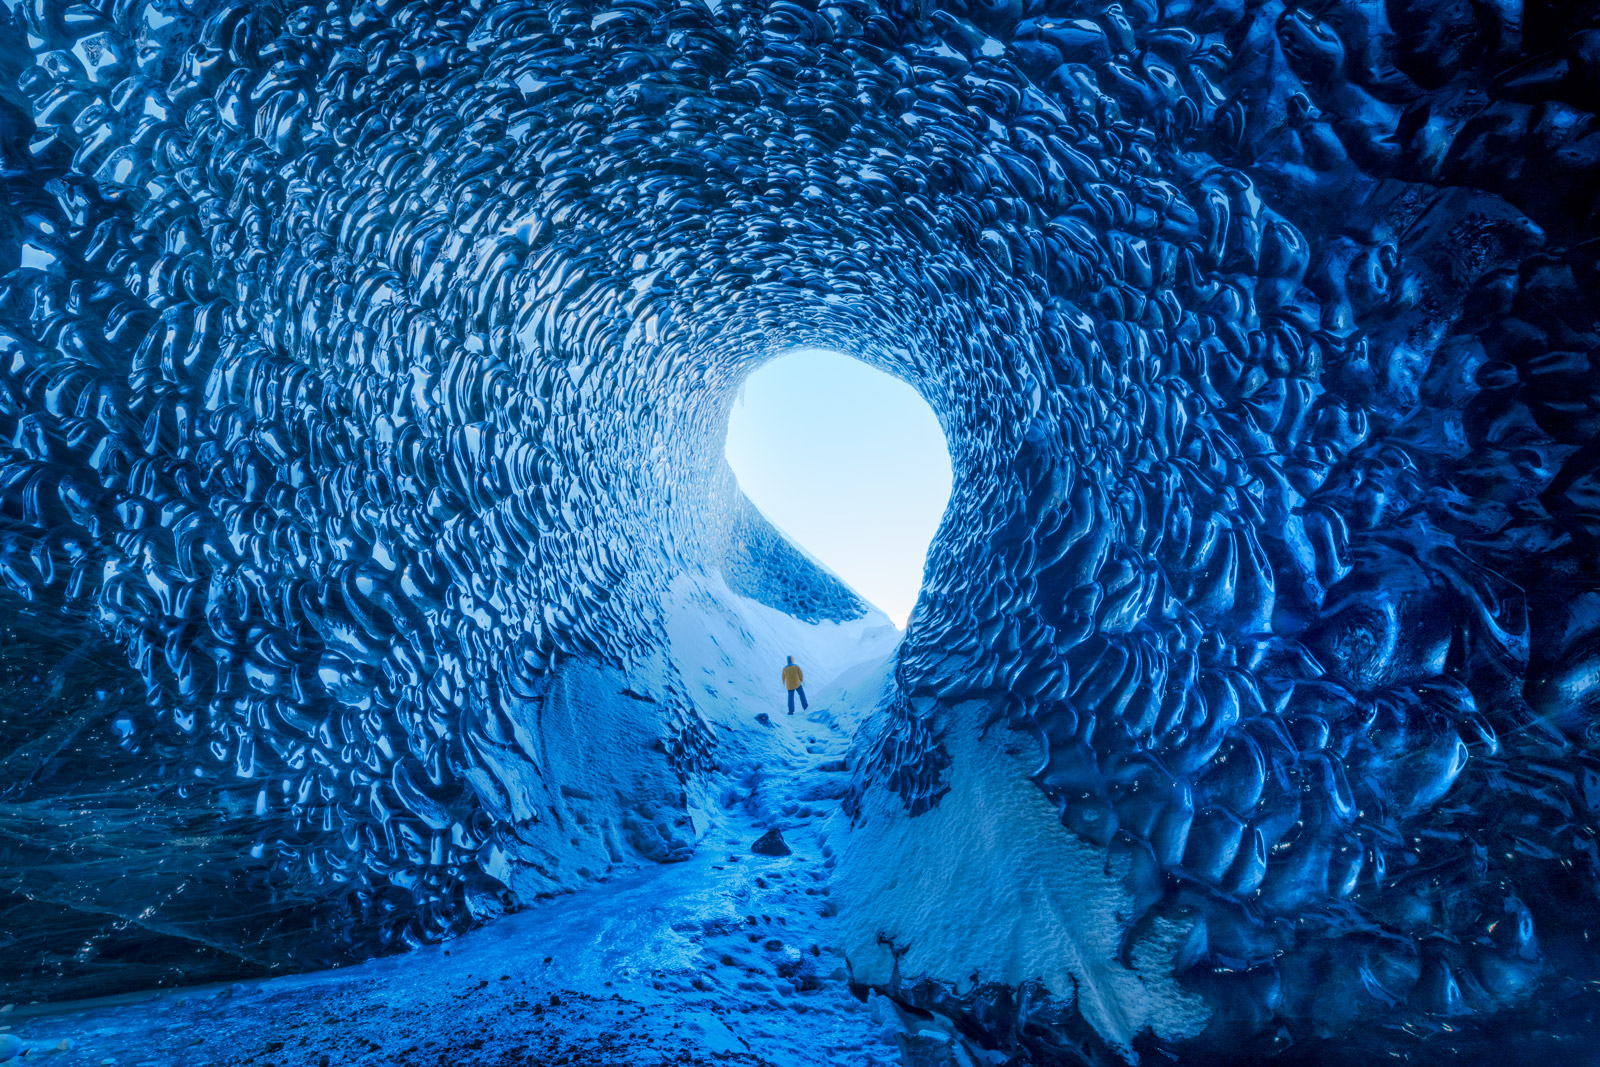 Iceland, Ice, Cave, Blue, limited edition, photograph, photo